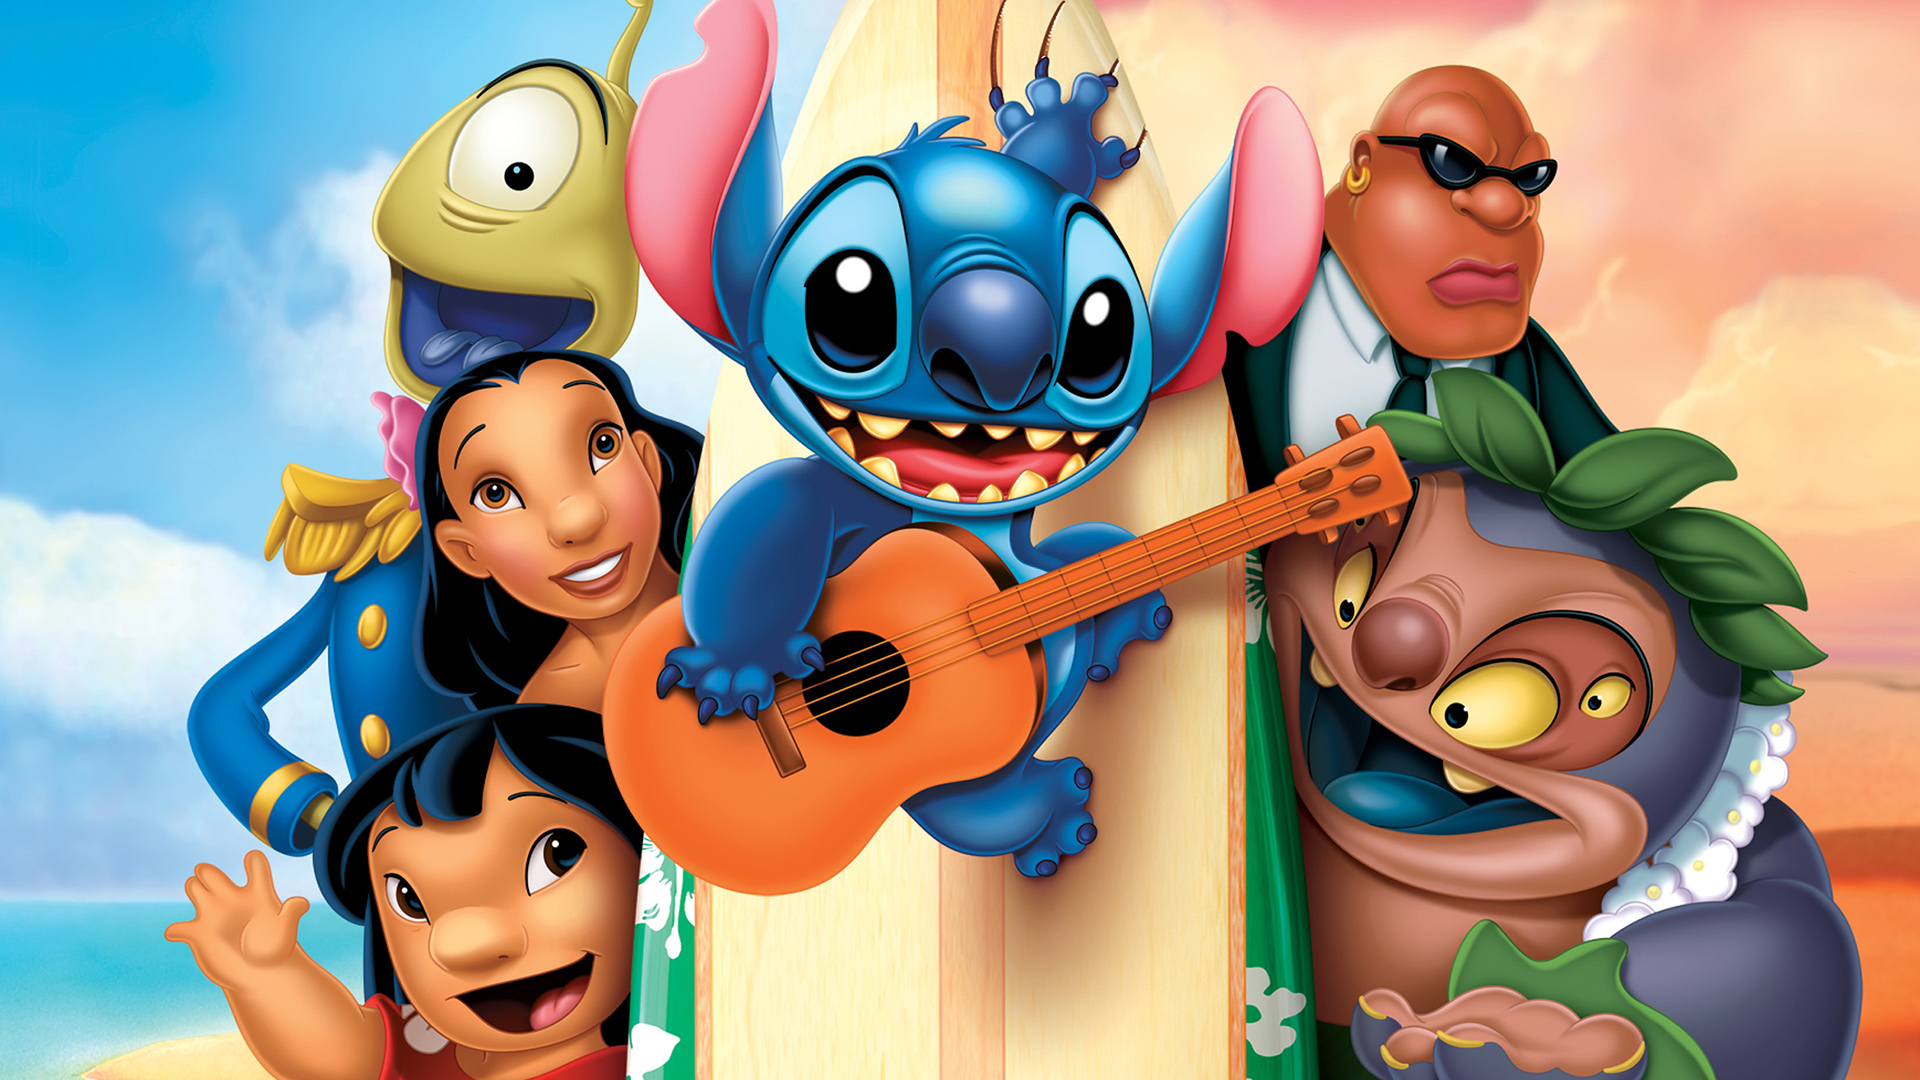 It's just a graphic of Adorable Lilo & Stitch Images